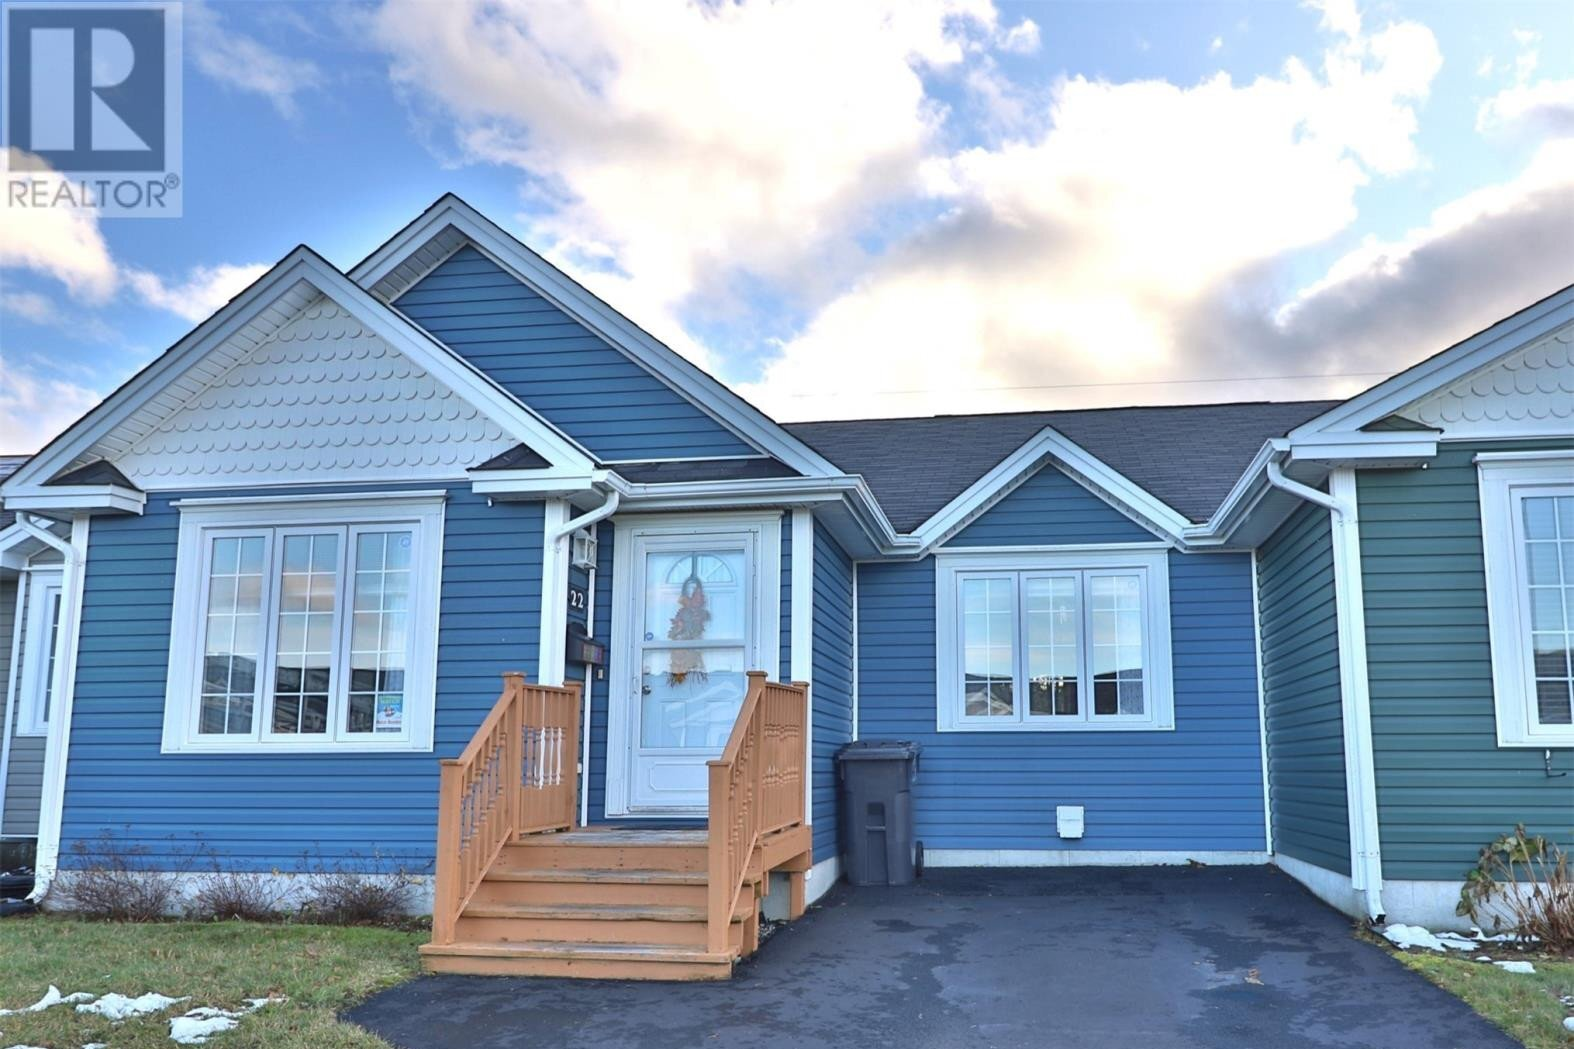 House for sale at 22 Avery Pl Mount Pearl Newfoundland - MLS: 1223517